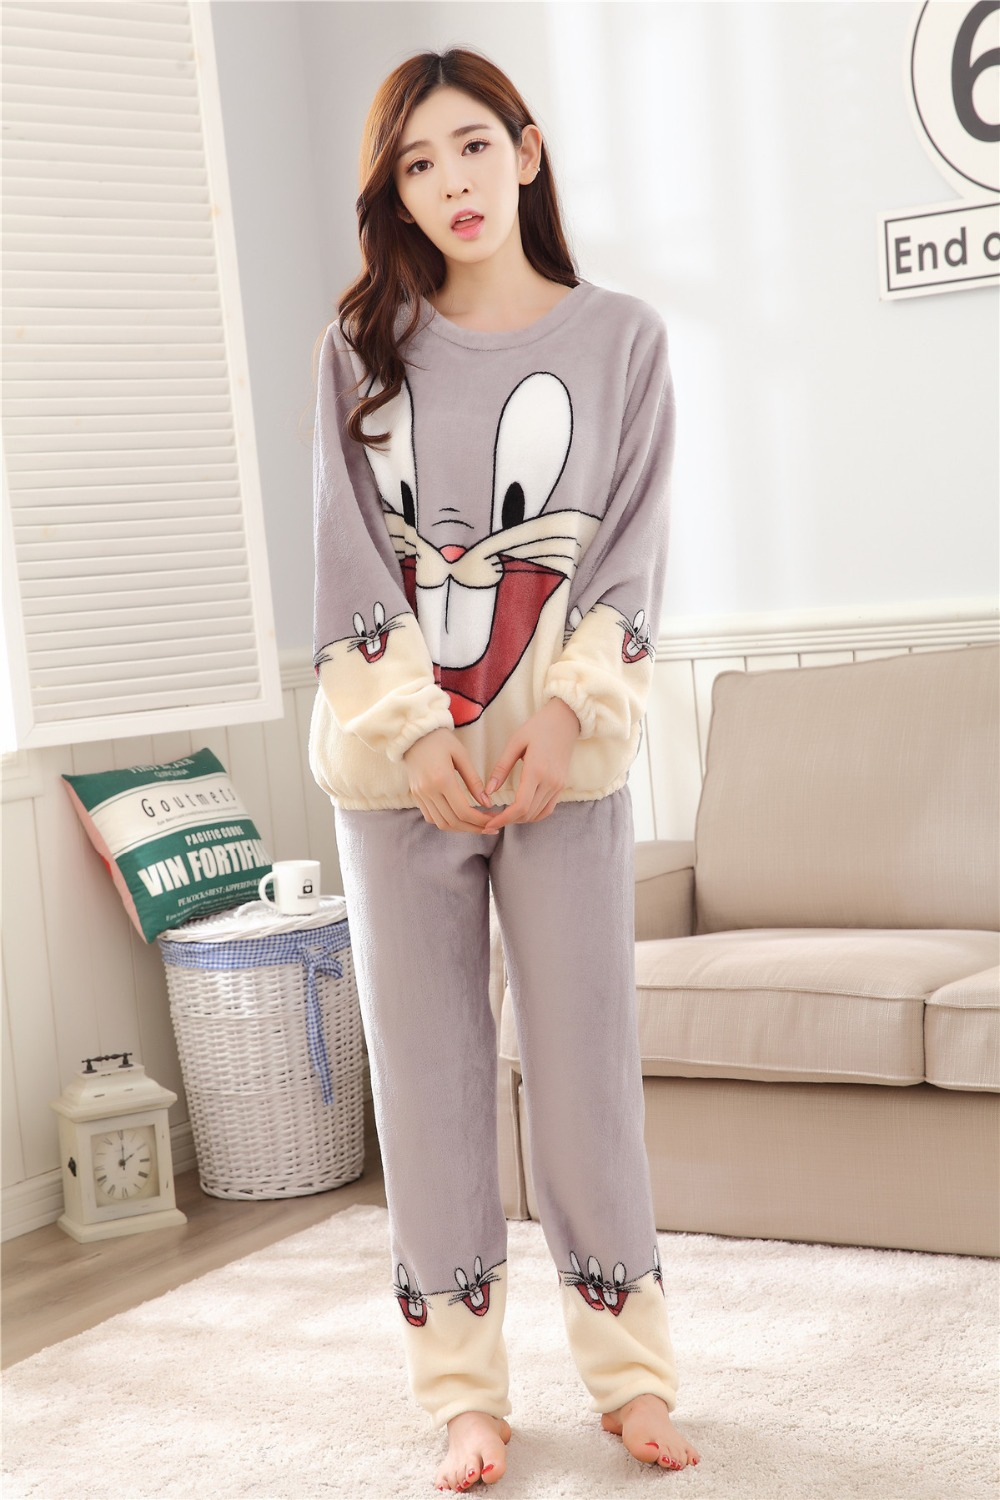 Women Pajamas Set For Autumn cute cartoon pink Women Clothes Sleepwear Nightgown For Women Long Sleeve And Pants Hot Sale pijama 68